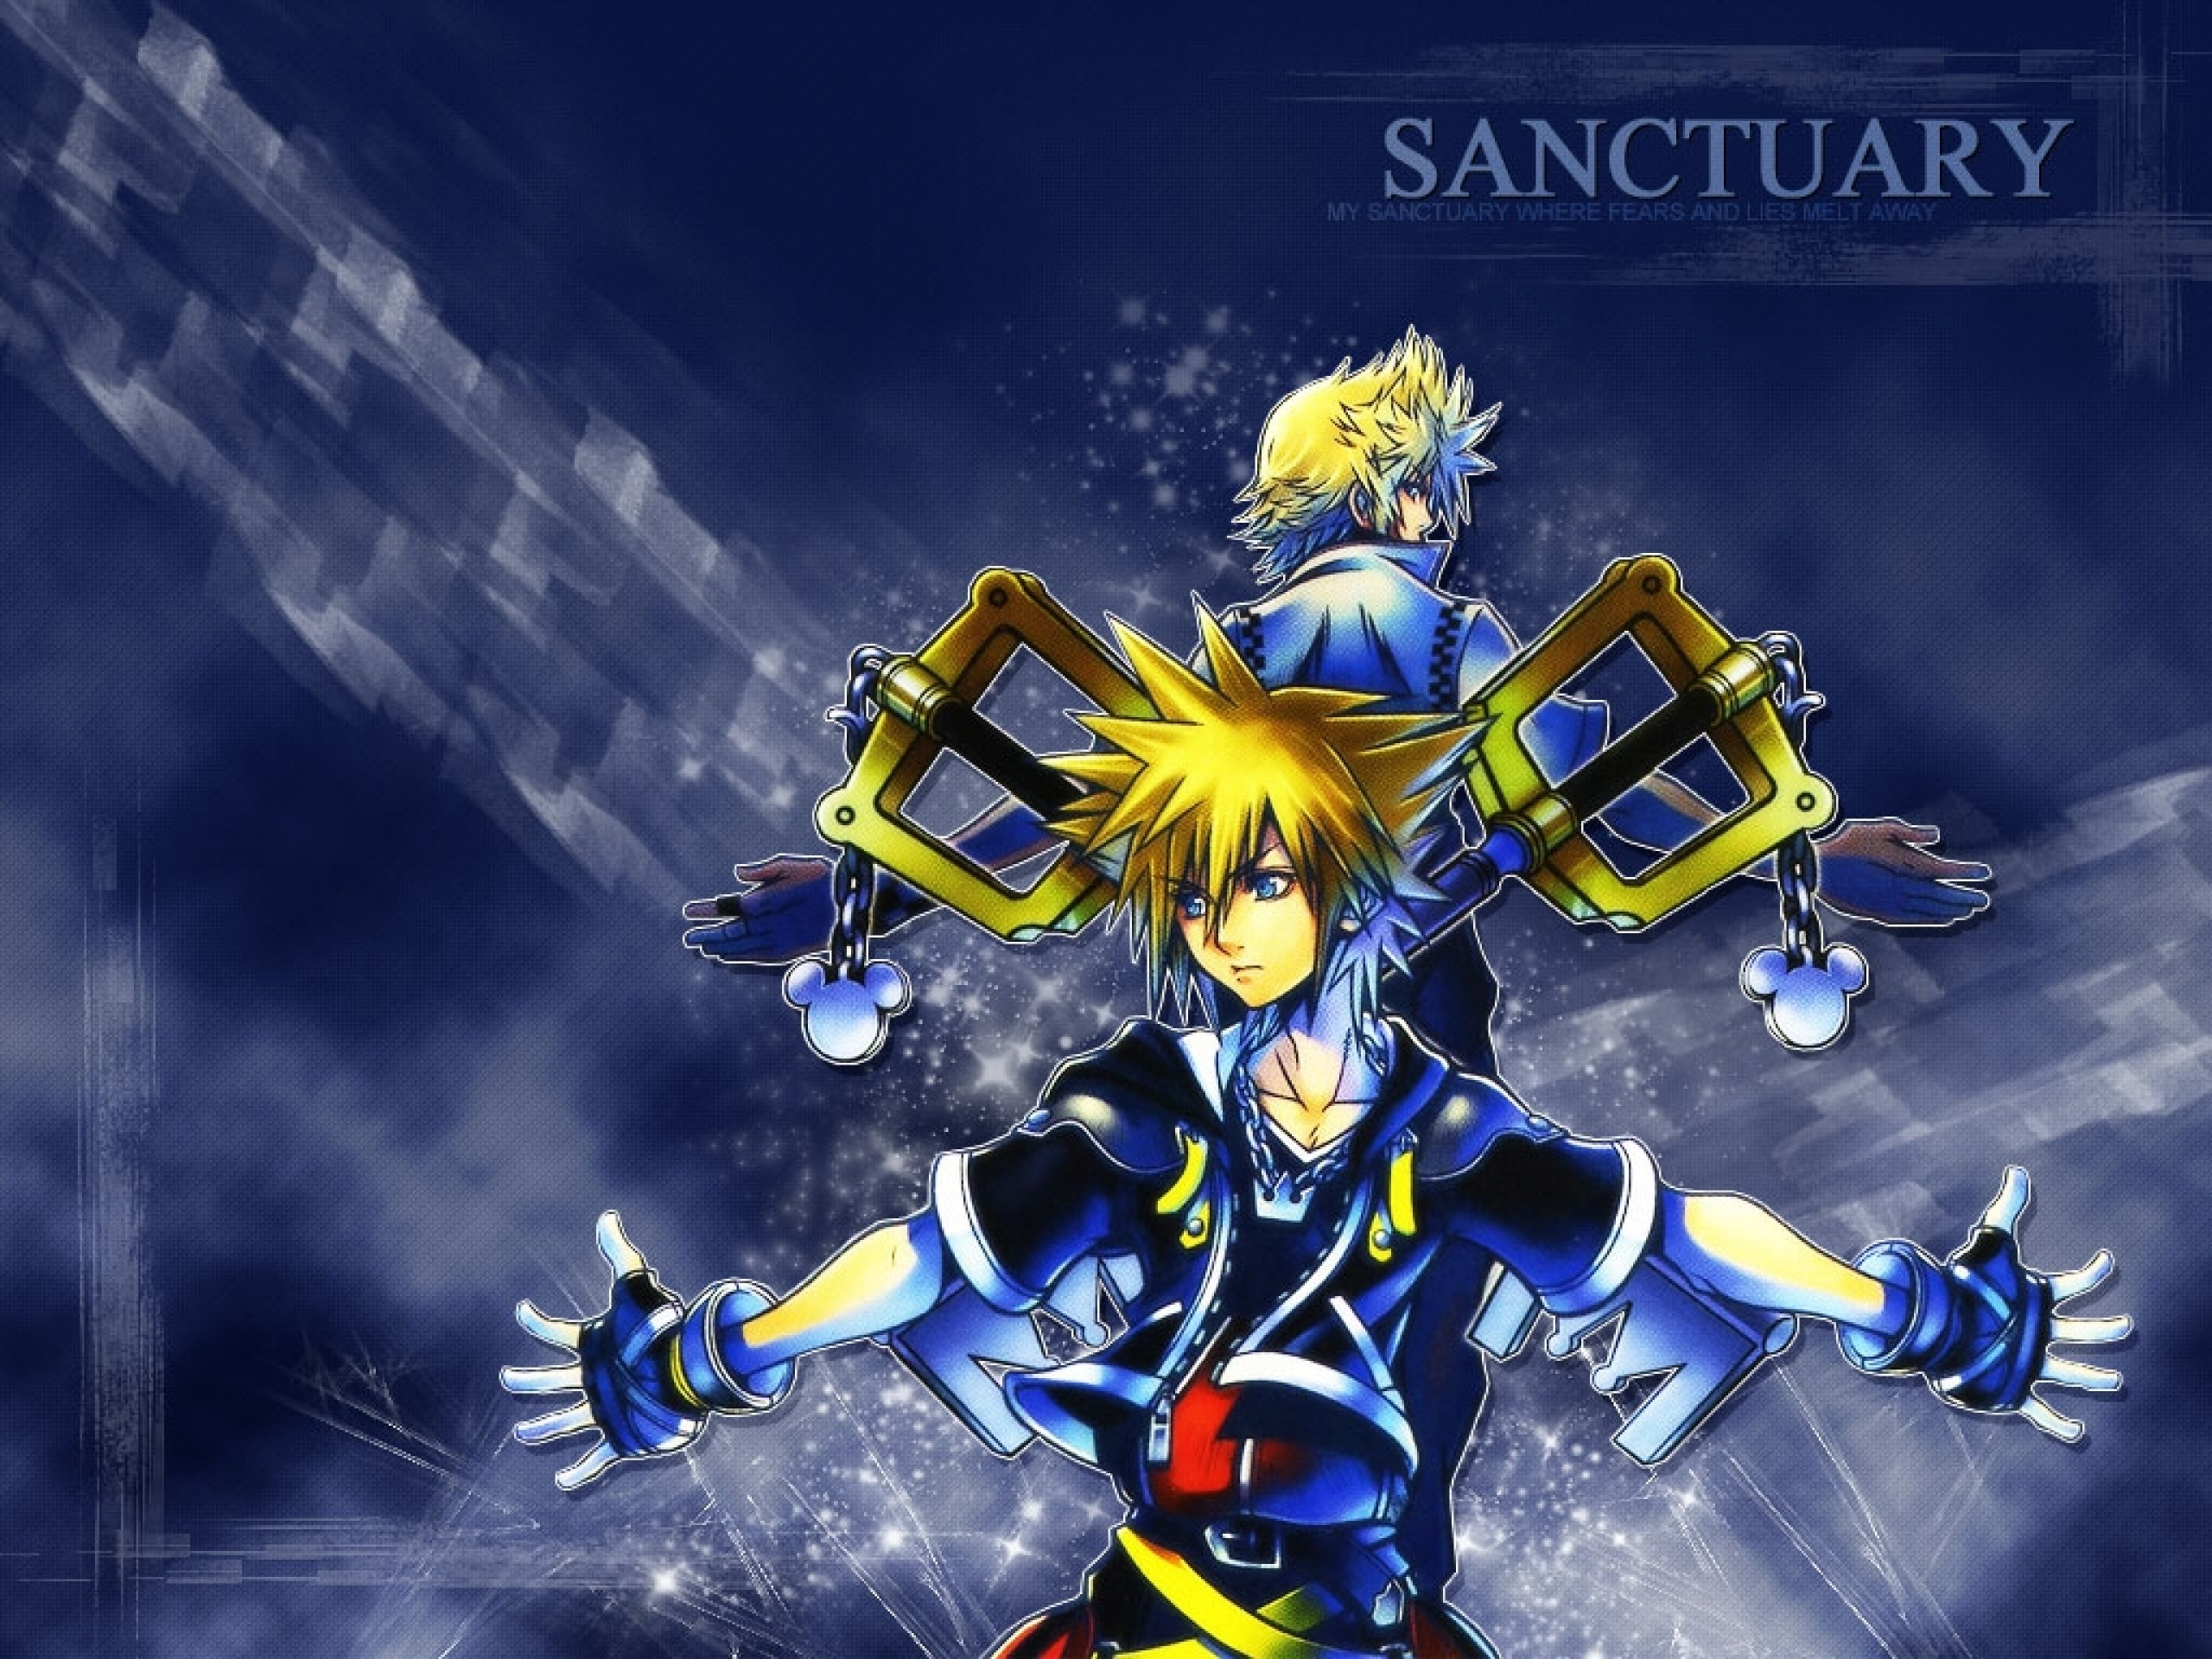 Download Kingdom Hearts Games Wallpaper To Your Mobile Phone 2560x1920